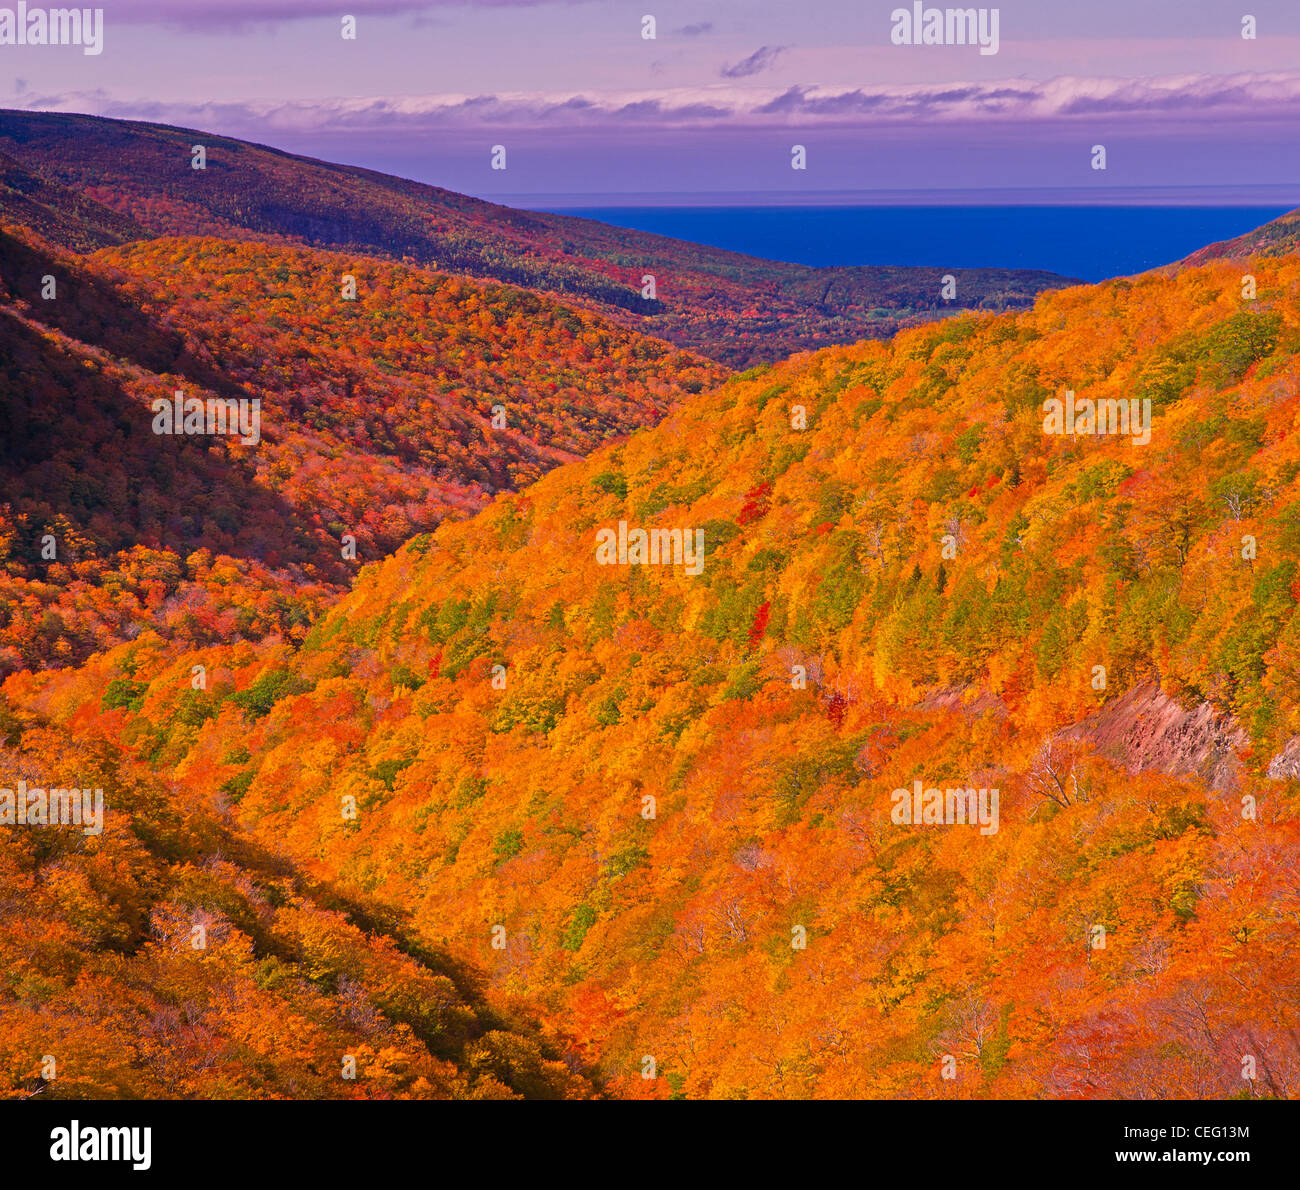 Fall at the Cabot Trail in Cape Breton Highlands National Park on Cape Breton in northern Nova Scotia, Canada. - Stock Image